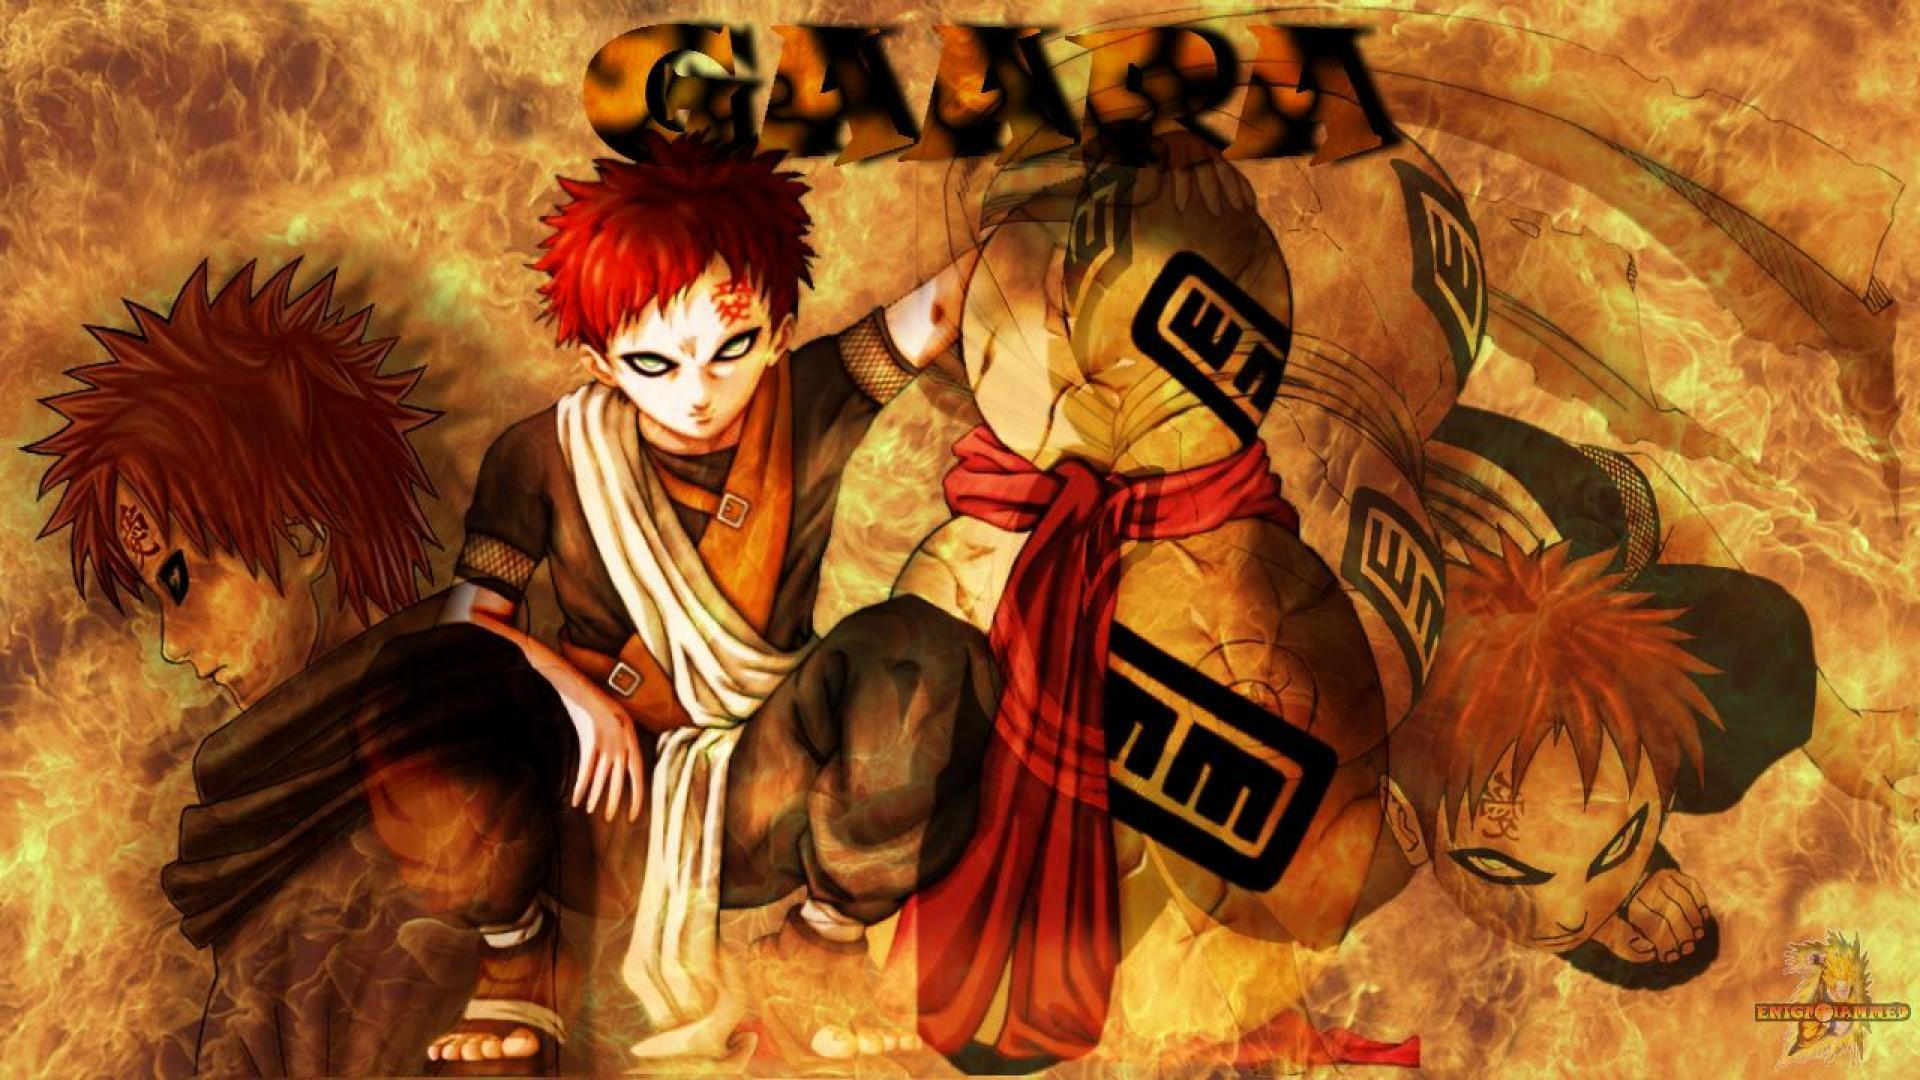 Gaara Wallpapers - Wallpaper Cave